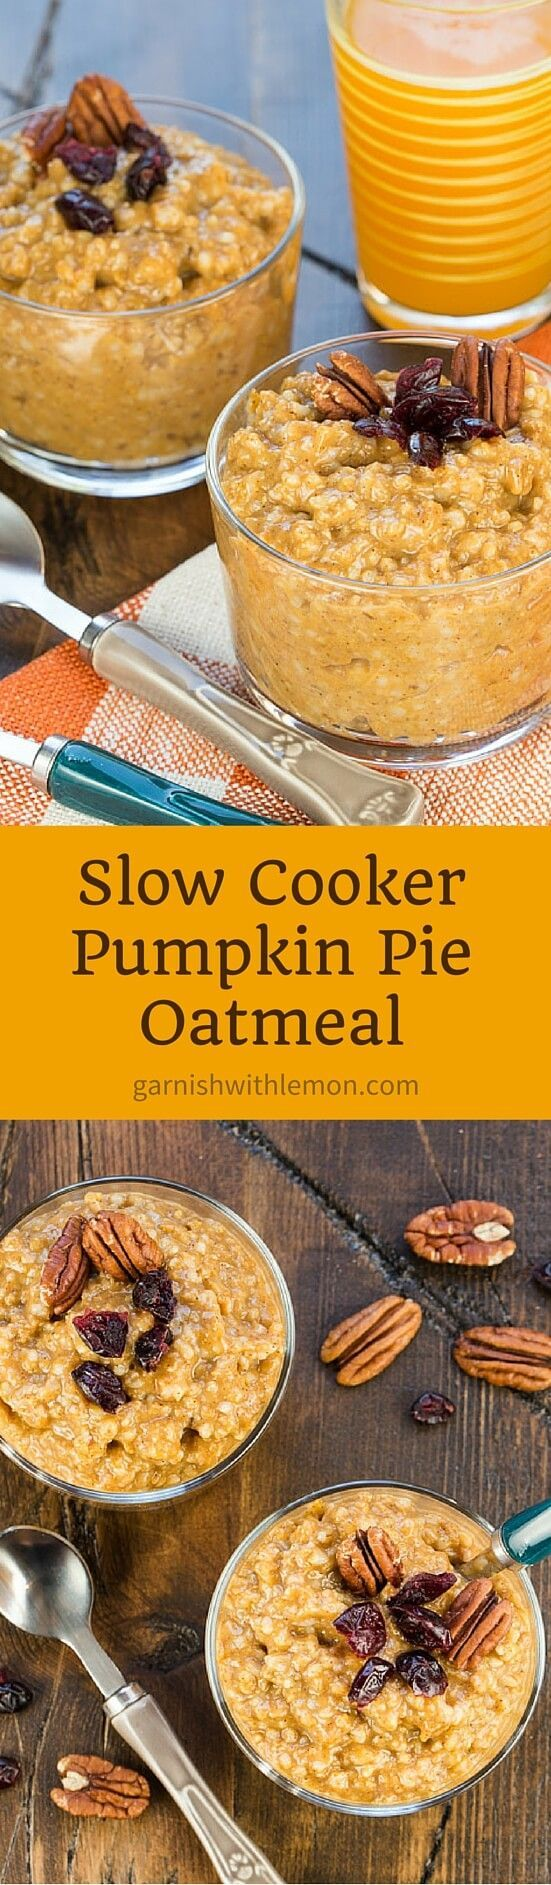 Yes, you can have pie for breakfast! This no-fuss Slow Cooker Pumpkin Pie Oatmeal has all the flavor of dessert but with a healthier spin for morning eats. ~ http://www.garnishwithlemon.com